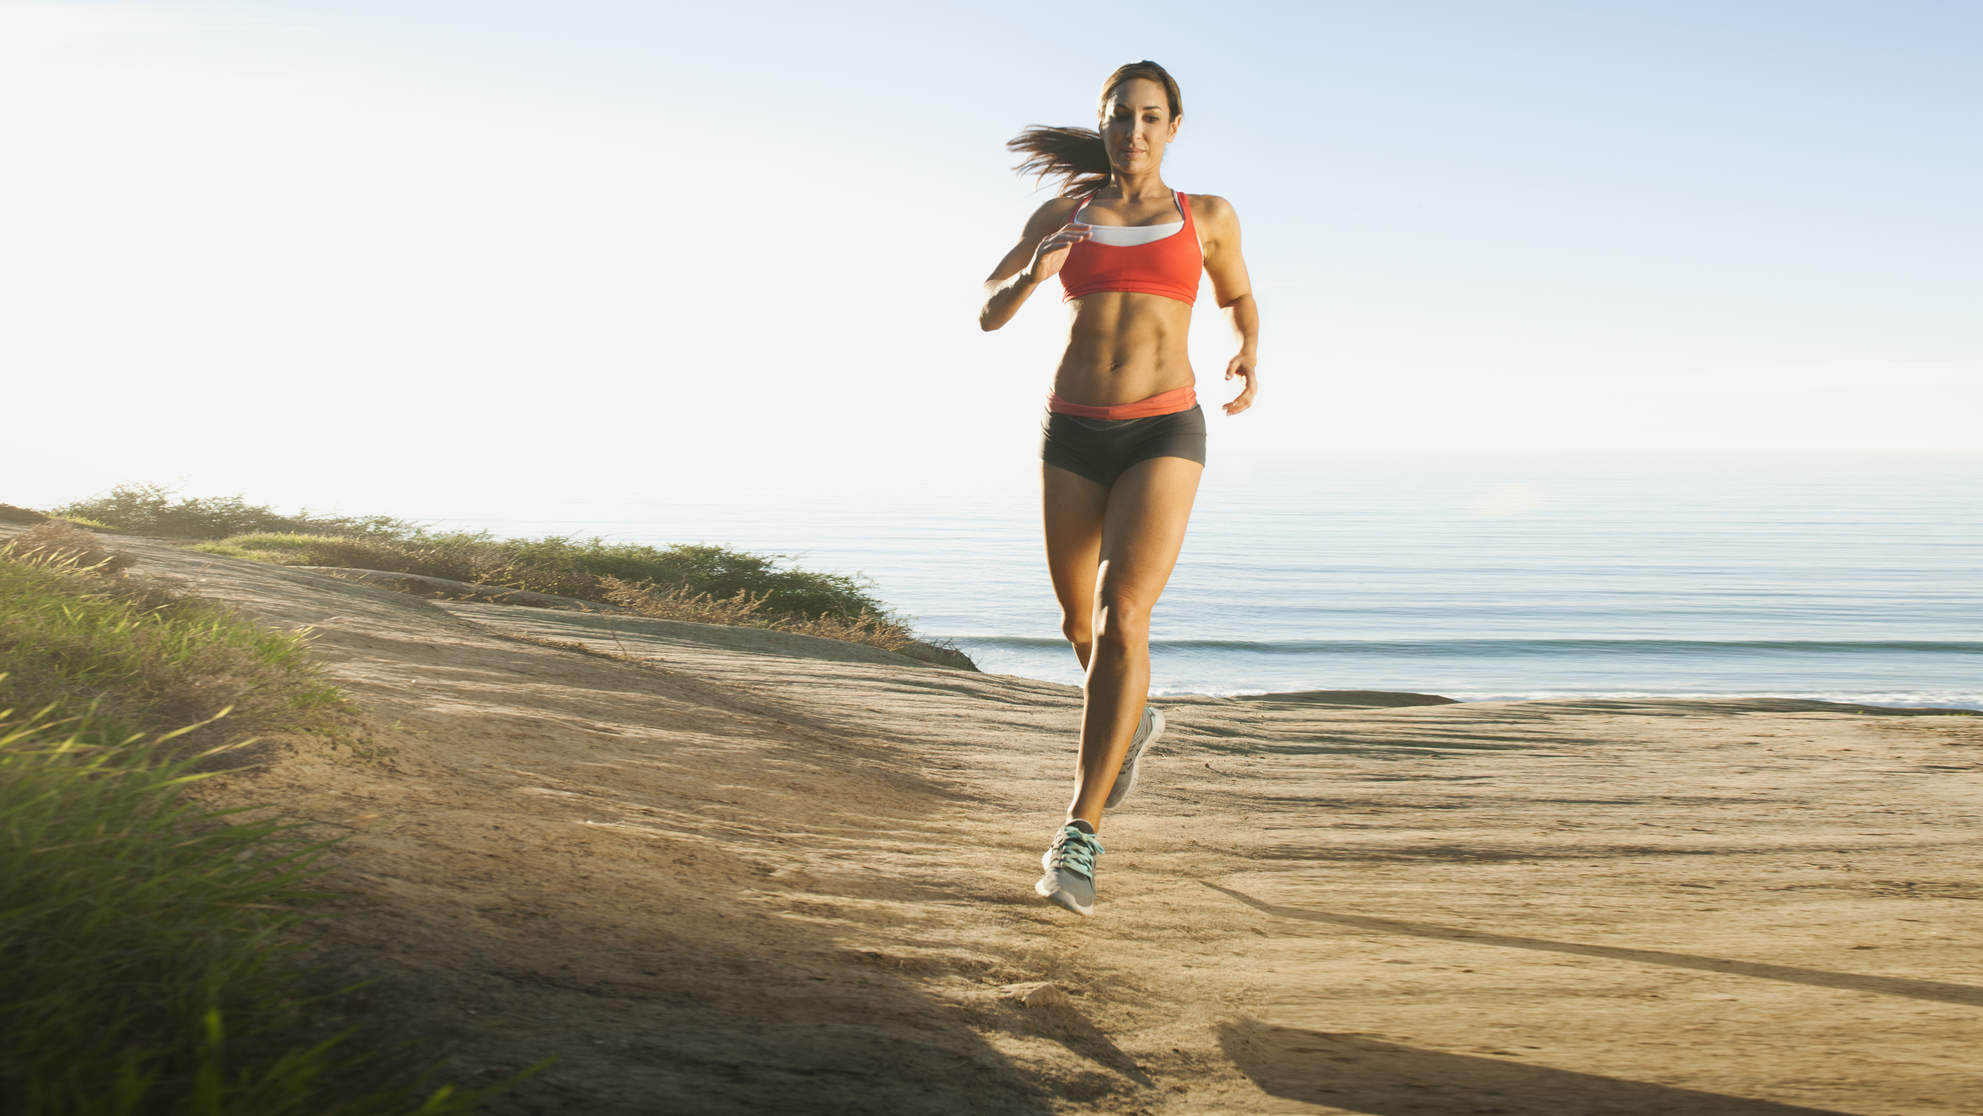 Introducing Plogging: The Environmentally Friendly Way to Exercise